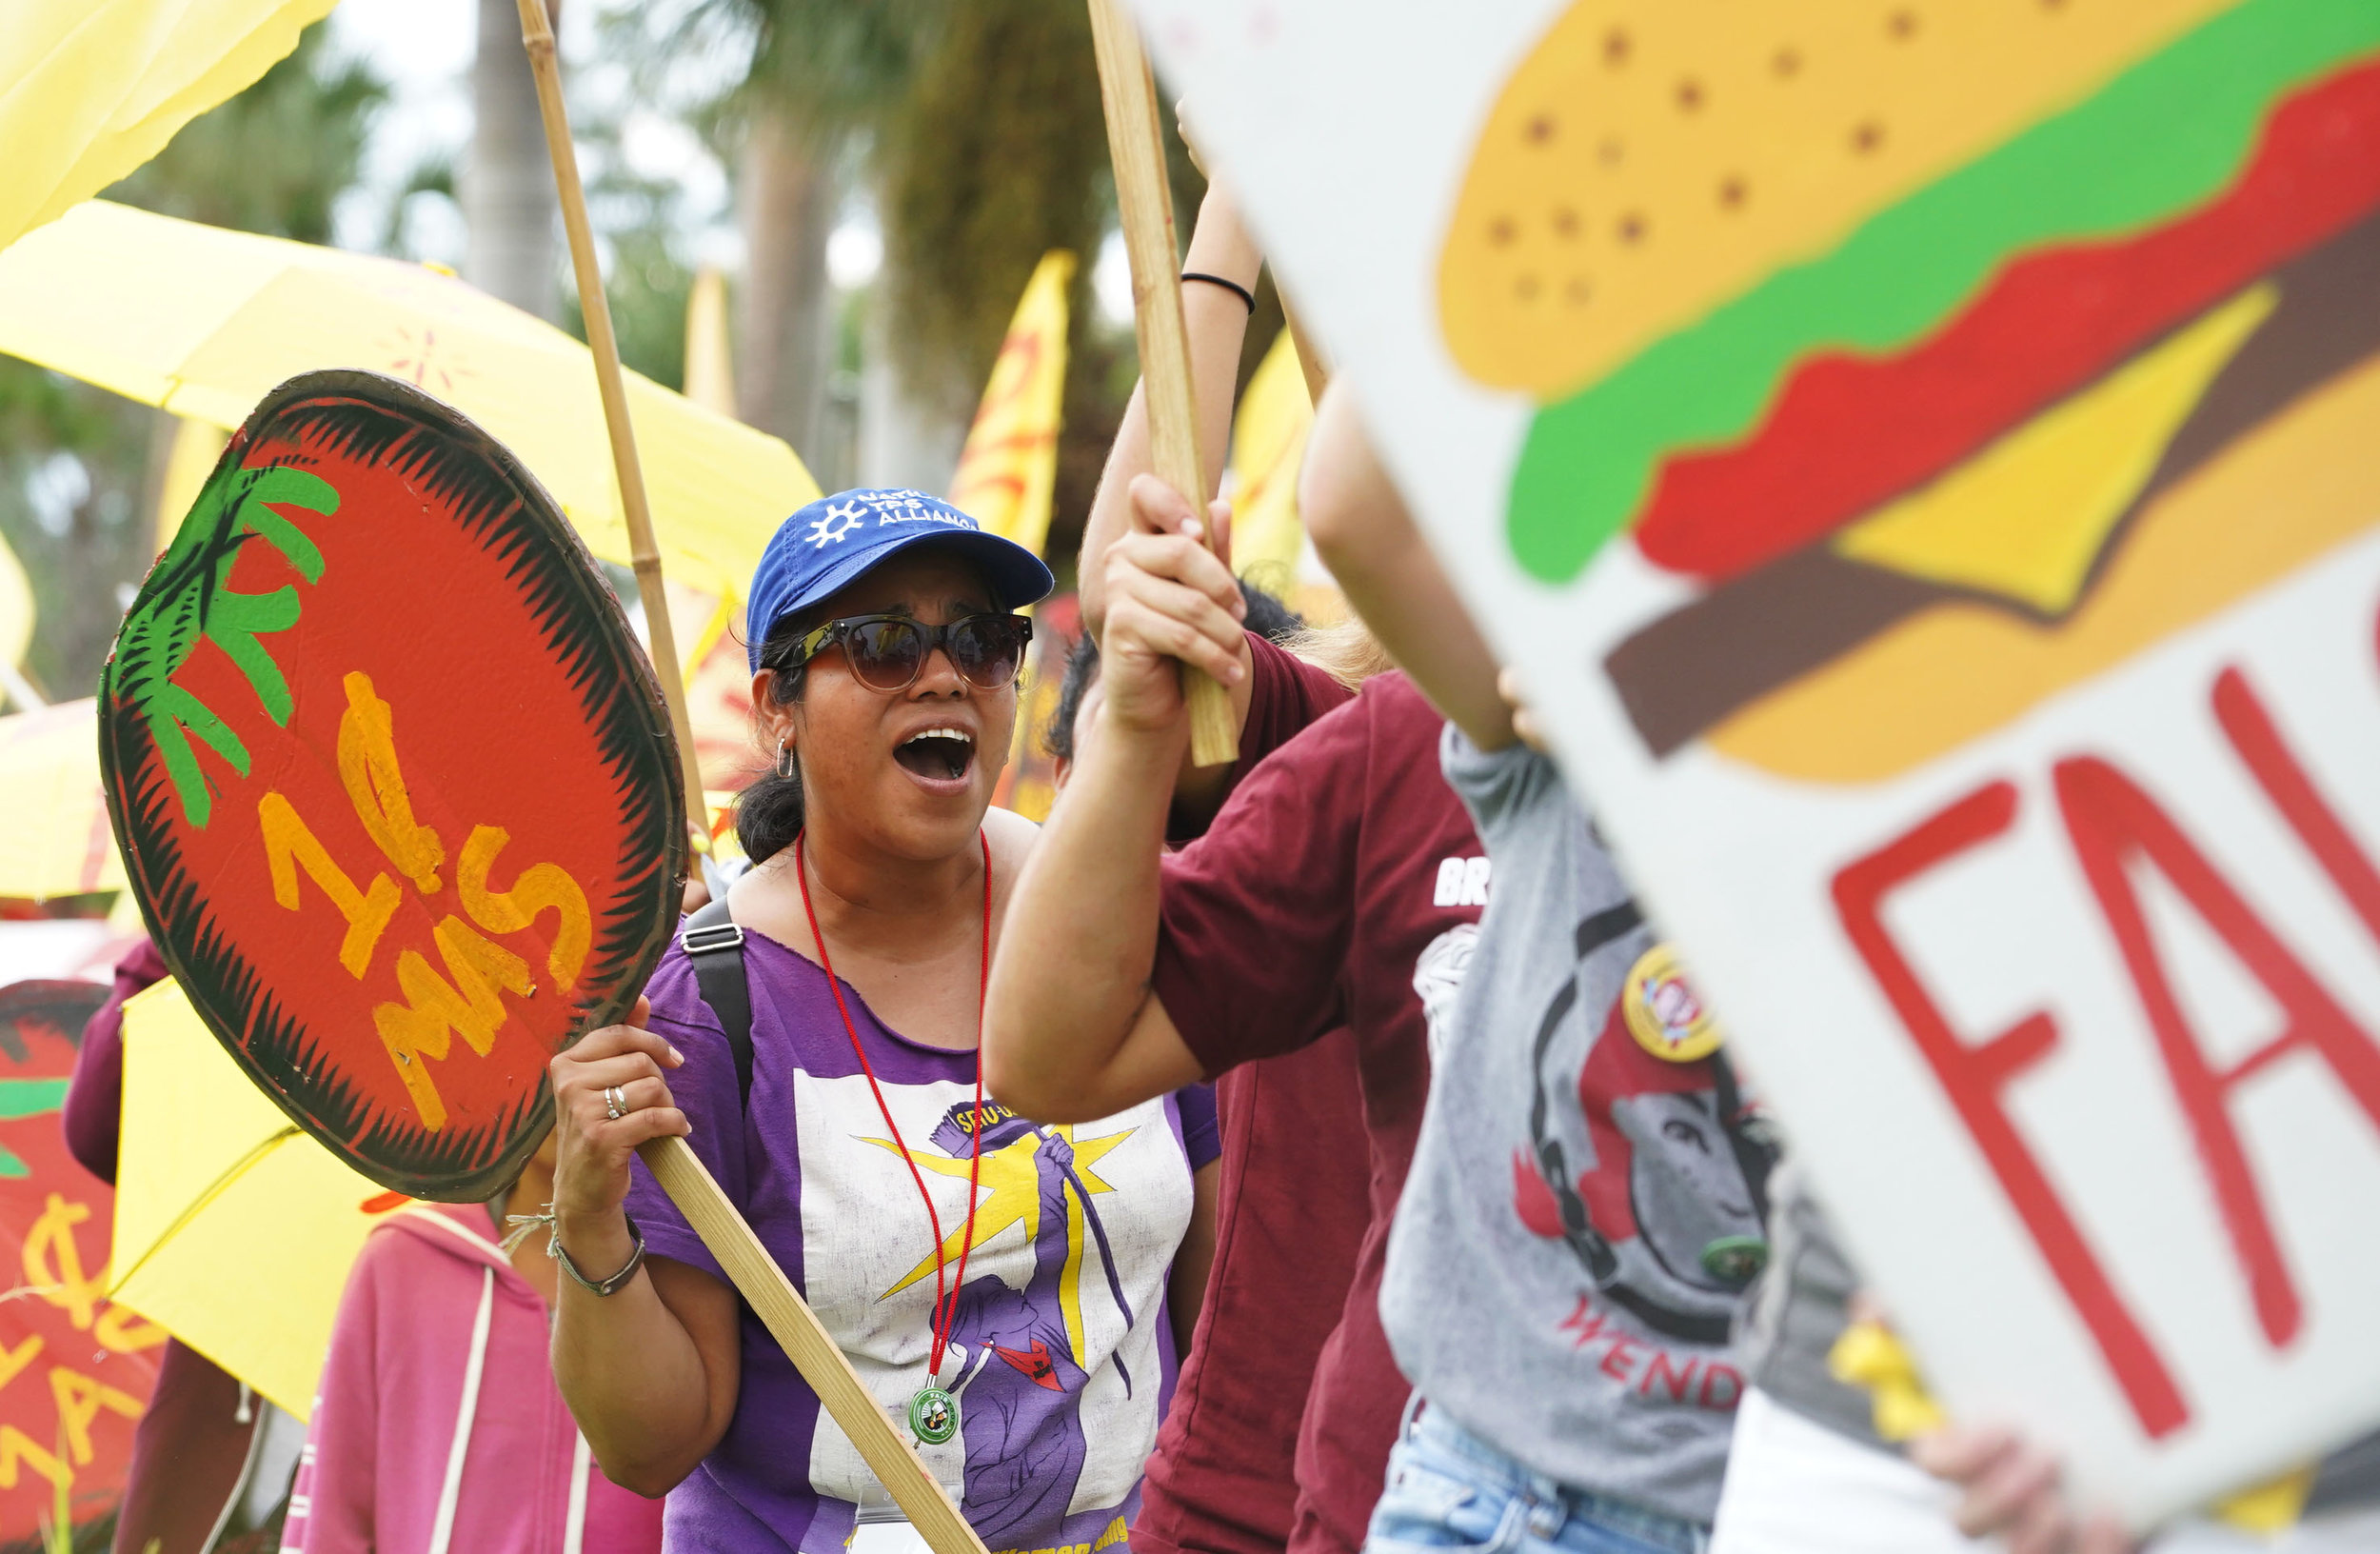 Immokalee_Workers_Encuentro_Sept_20181.JPG